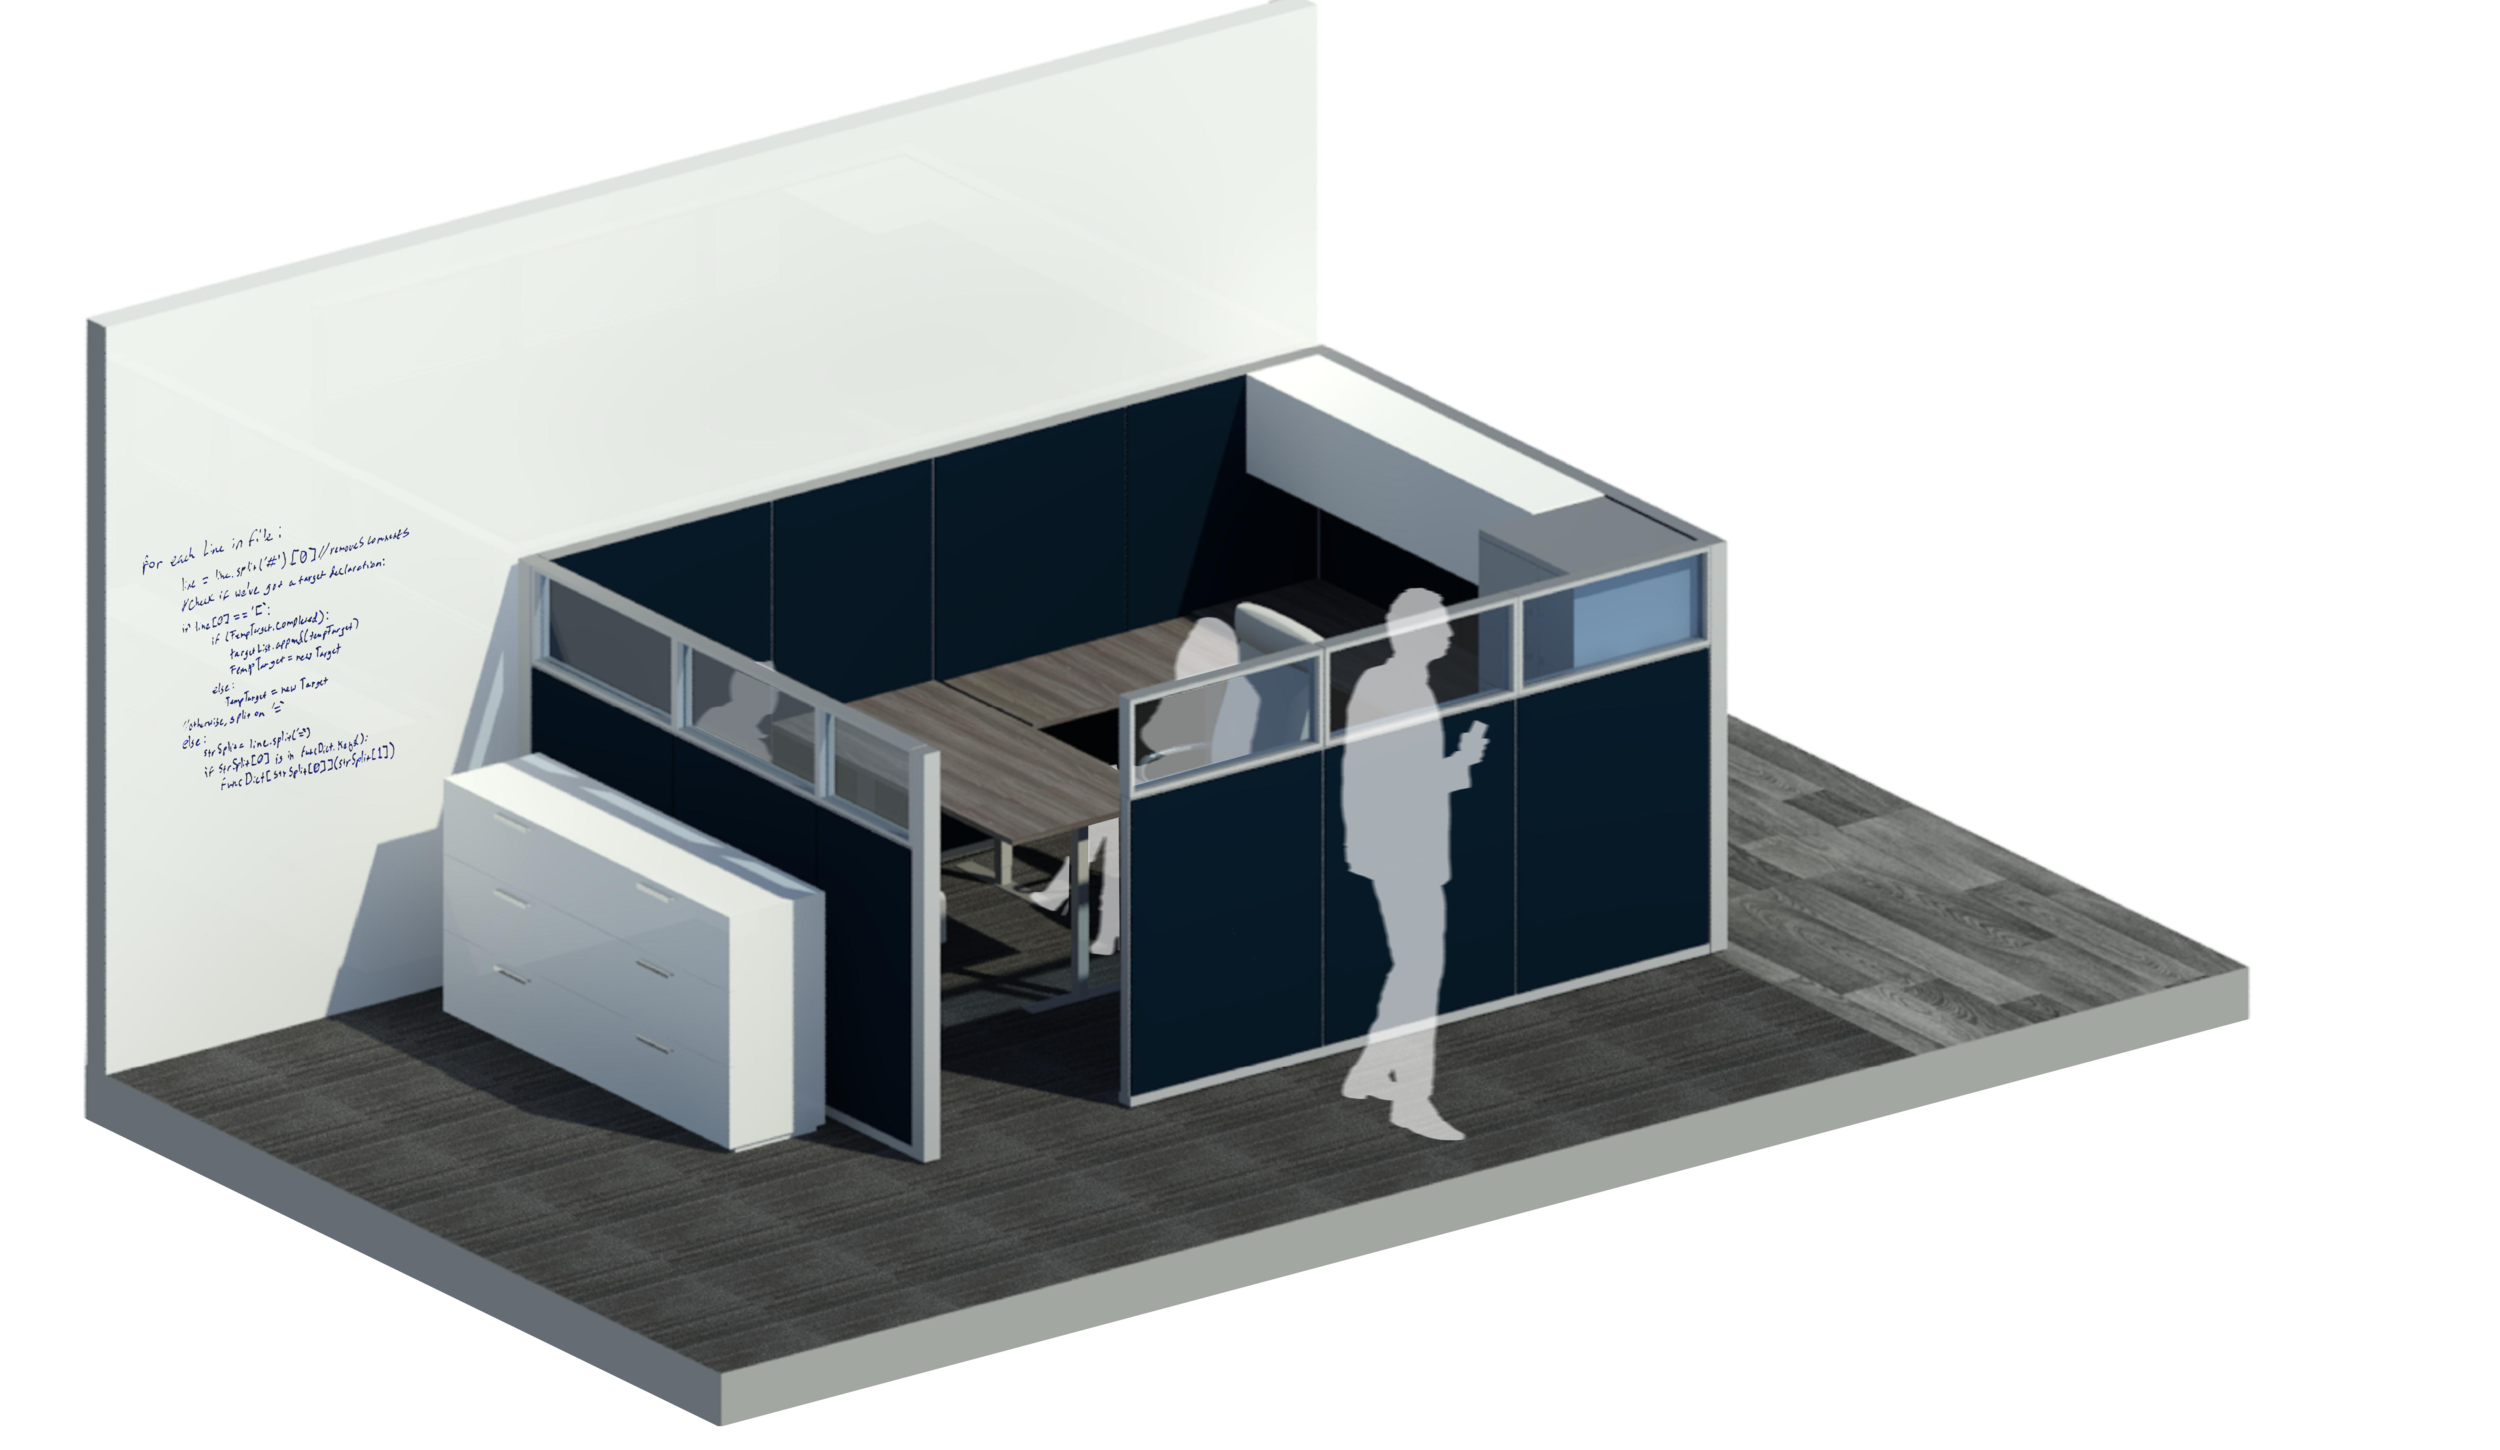 1804 B103-2_WID_2017 - Rendering - TYPICAL 4 - USHAPED DESK OFFICE_2.png